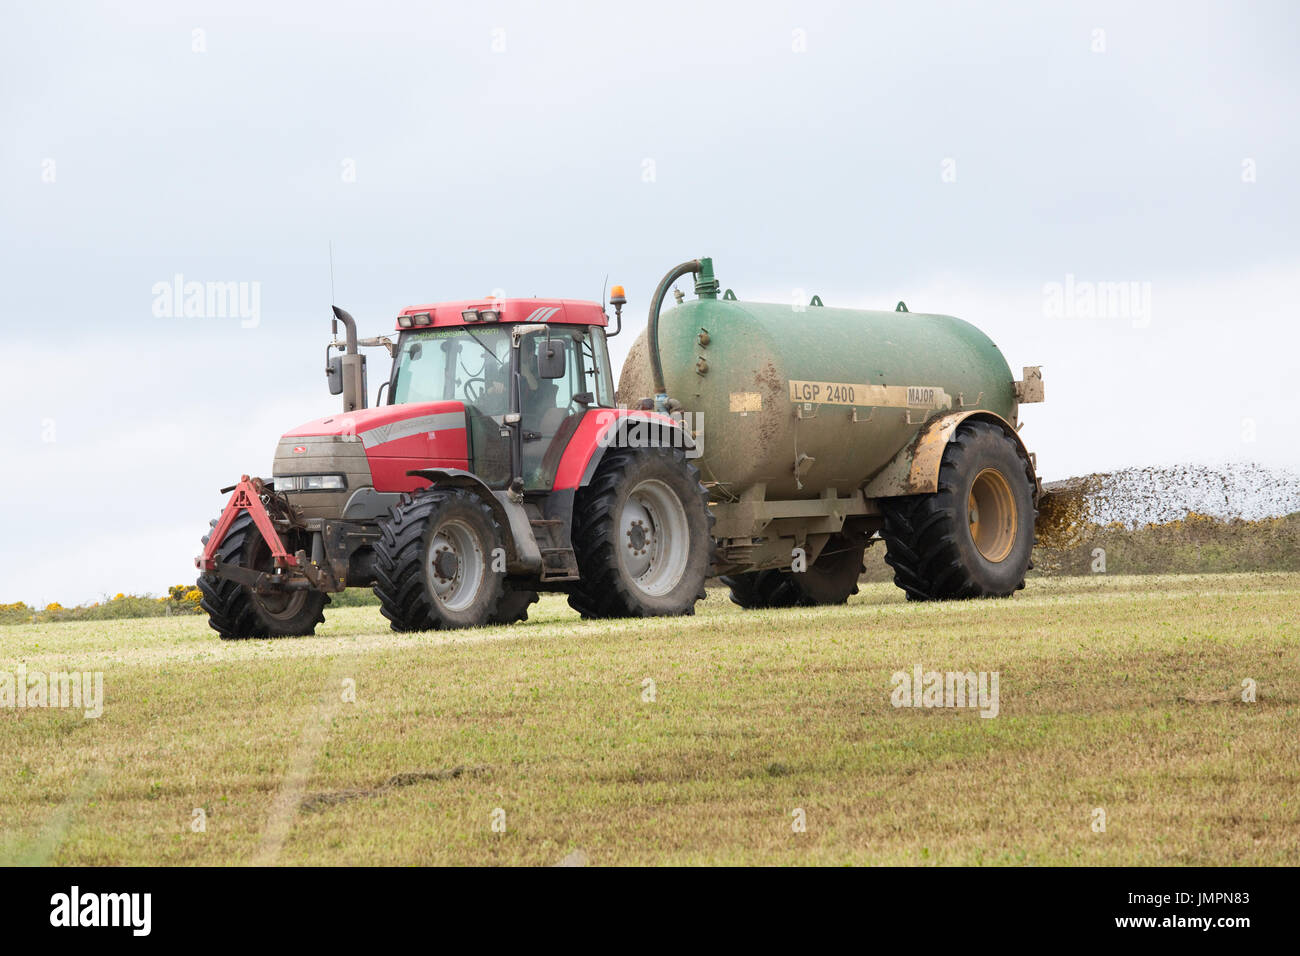 Tractor working with muck spreader Pembrokeshire UK - Stock Image